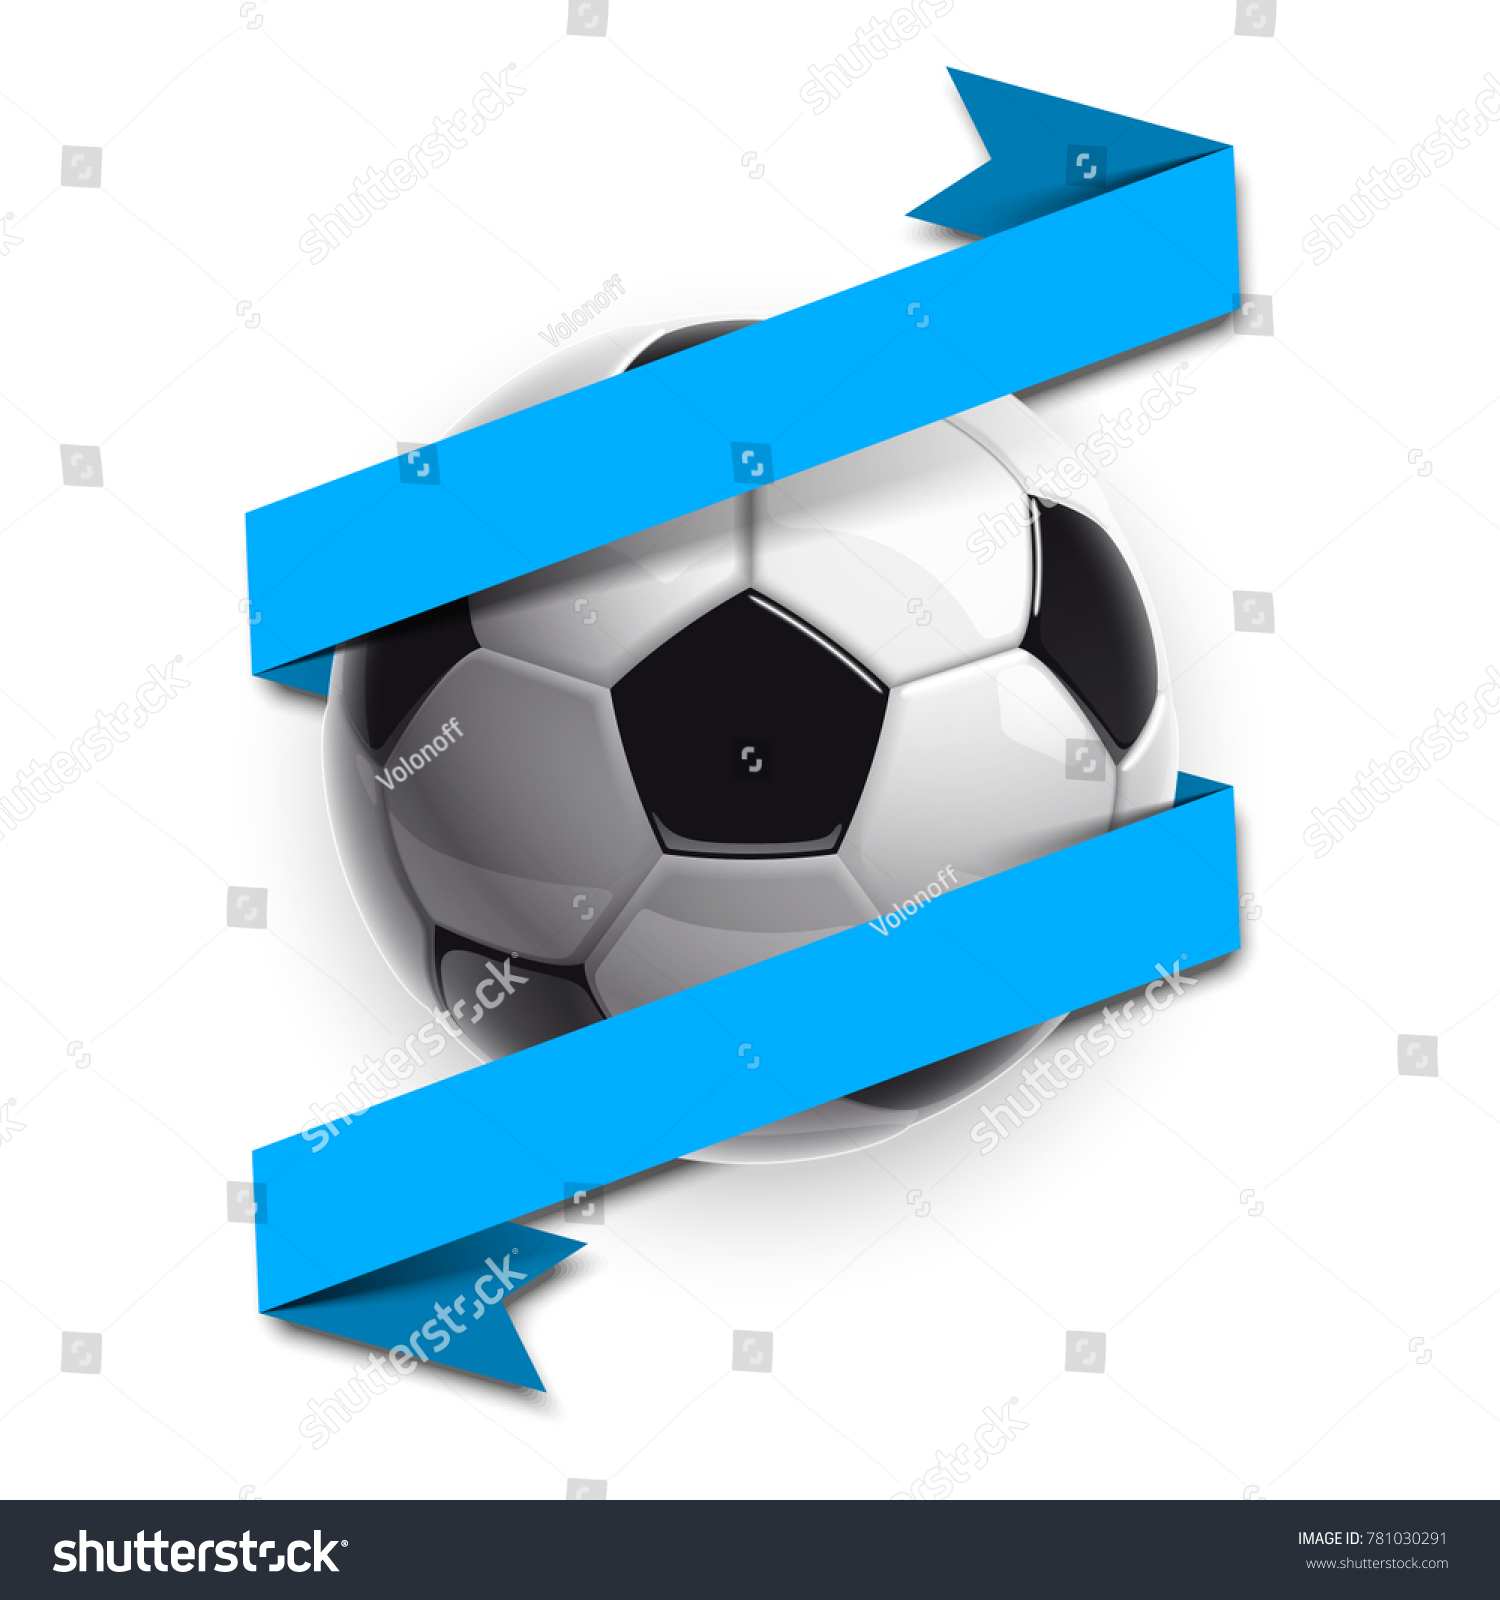 Football championship design banner illustration banner stock football championship design banner illustration banner with logo realistic soccer ball and a blue stripe biocorpaavc Image collections